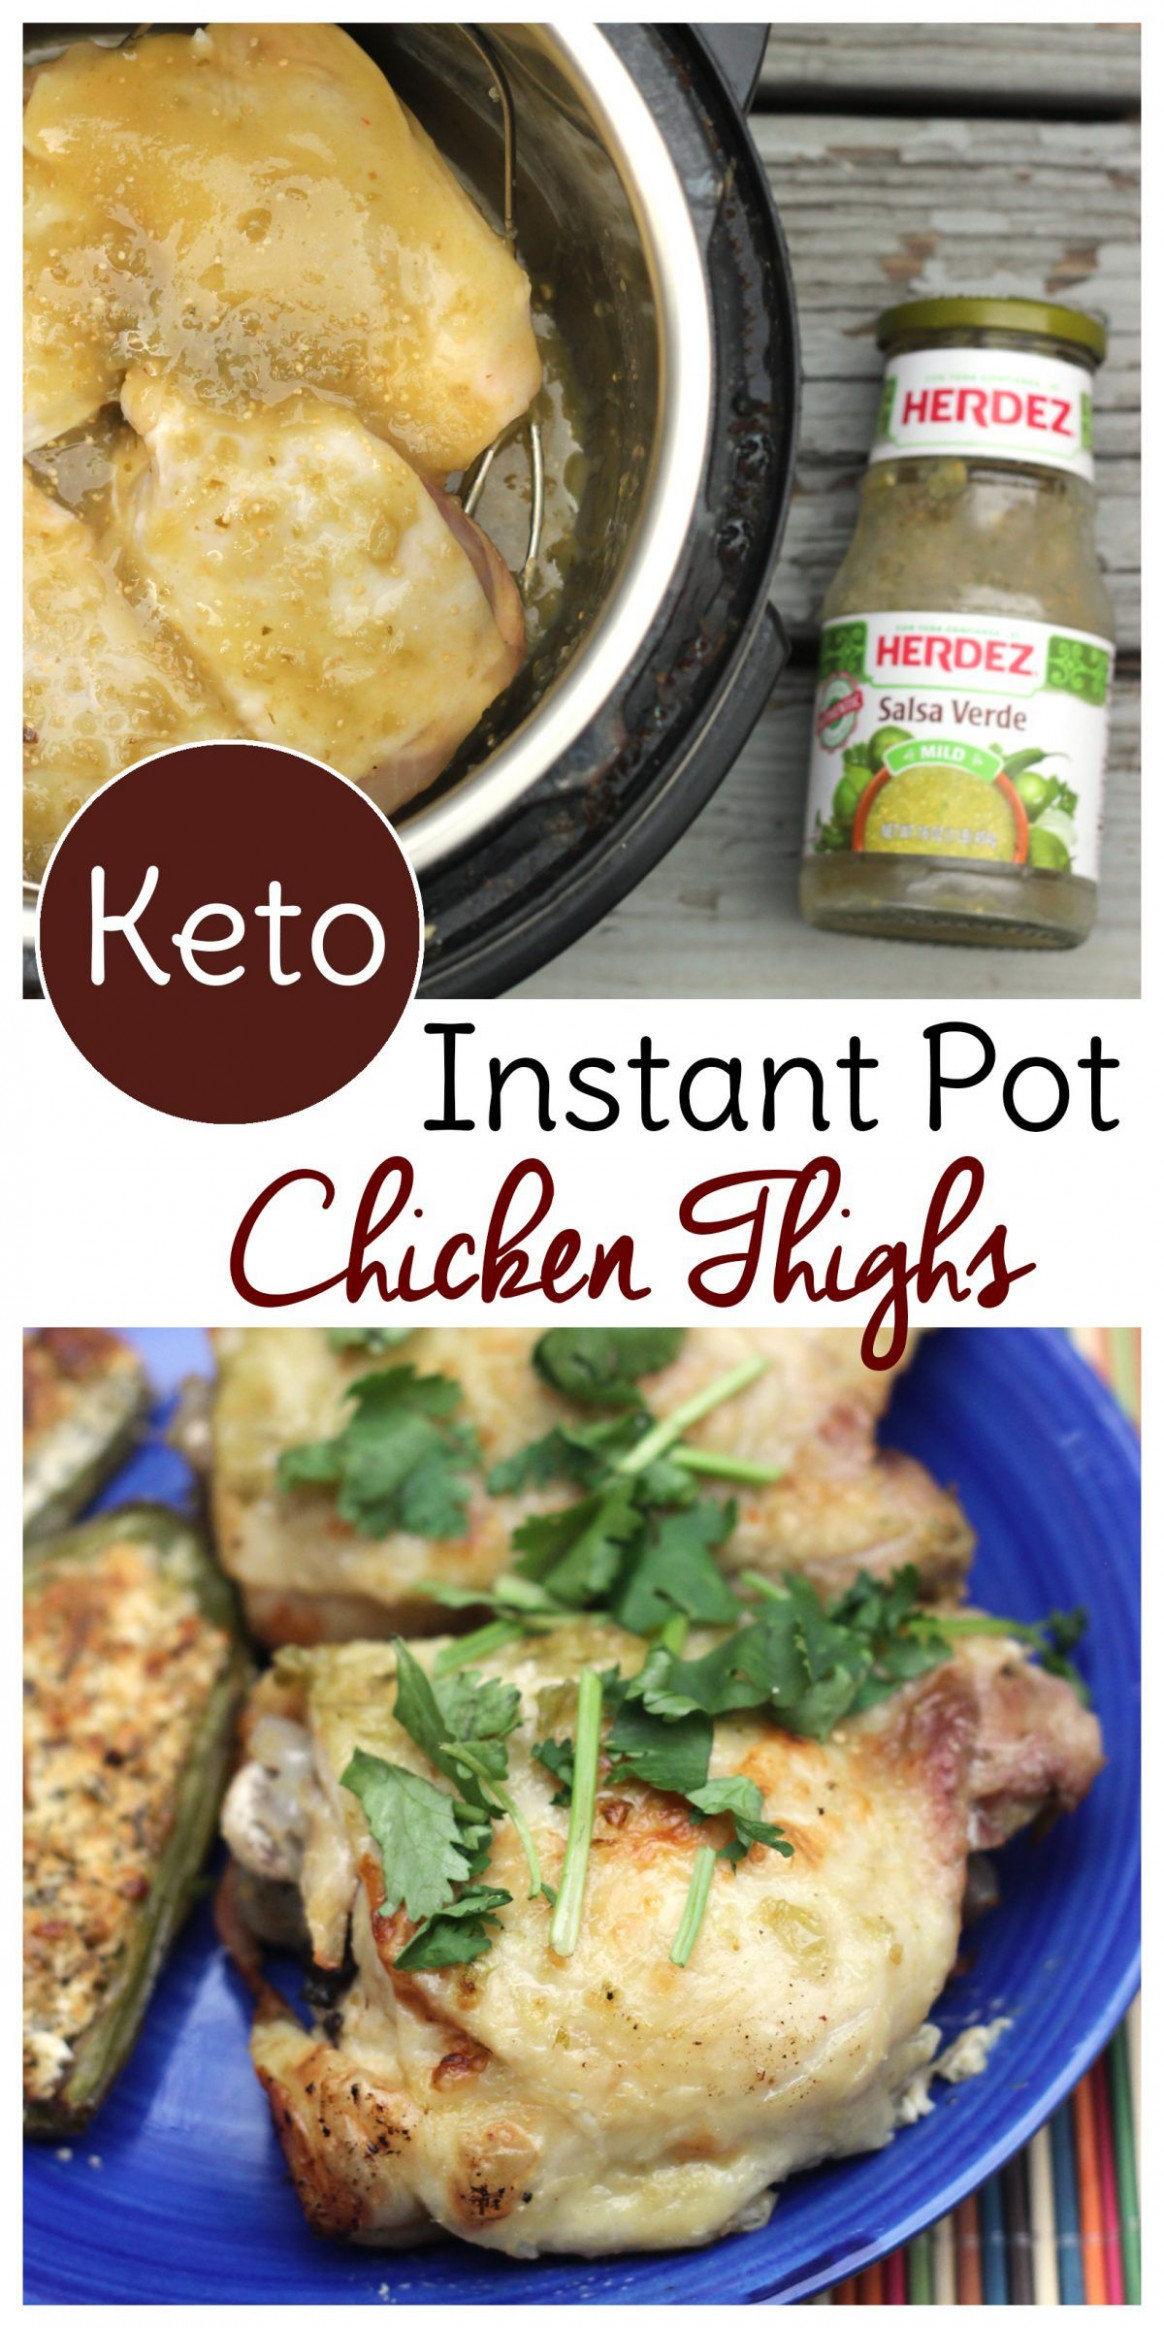 Instant Pot Frozen Chicken Thighs - instant pot recipes chicken thighs